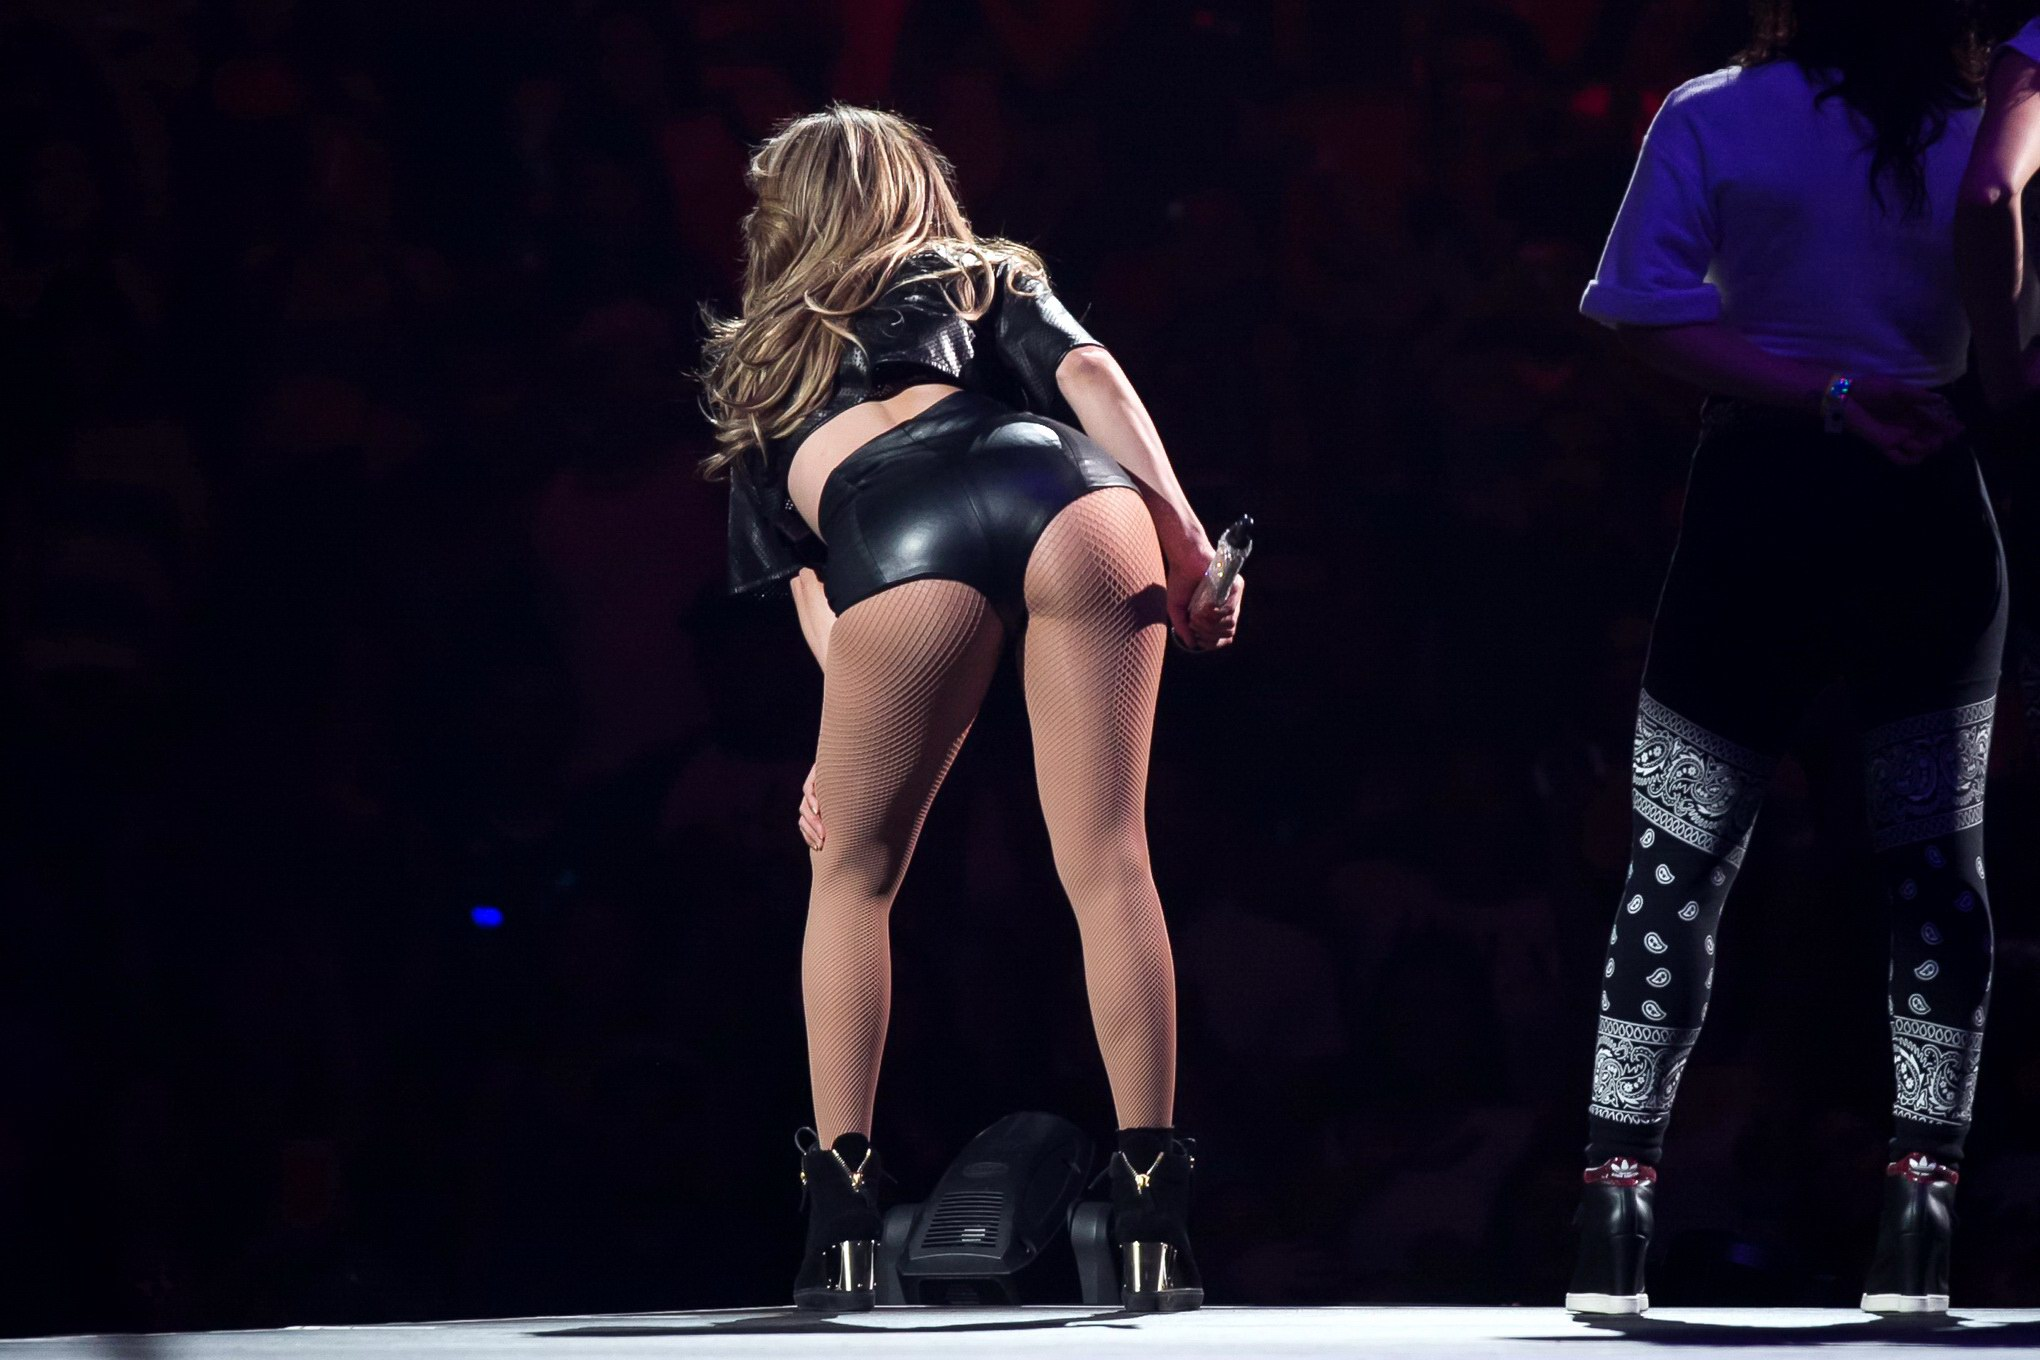 Big jennifer lopez butt ass